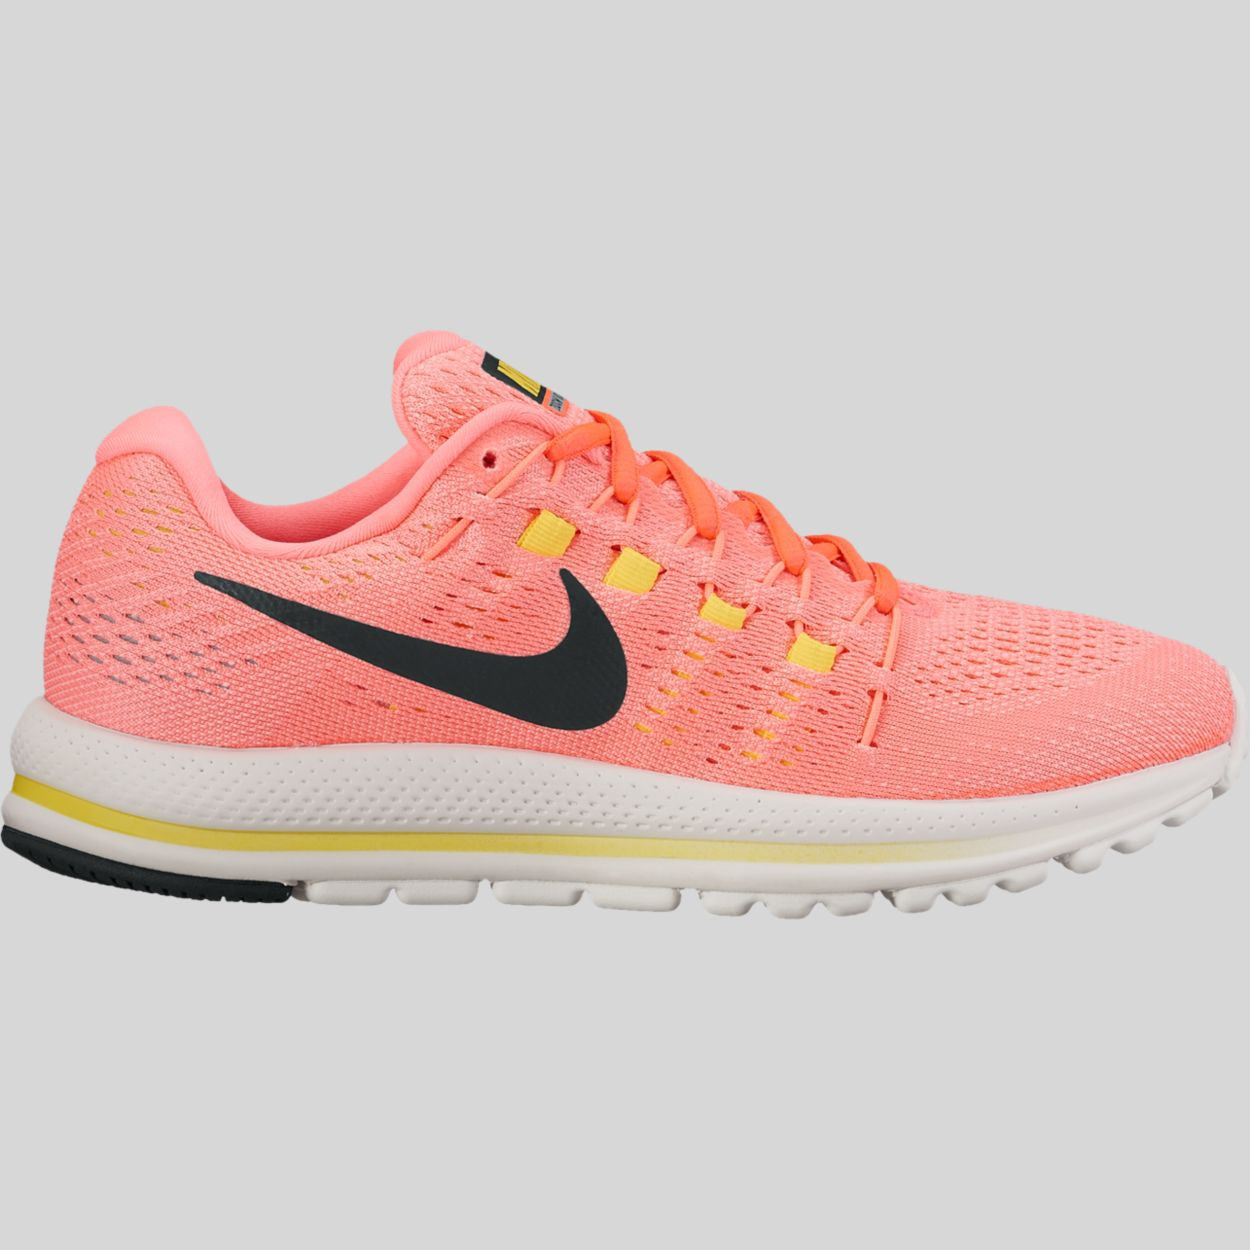 54c2fa6d28a0 Nike Wmns Air Zoom Vomero 12 Hot Punch Black Lava Glow (863766-600 ...